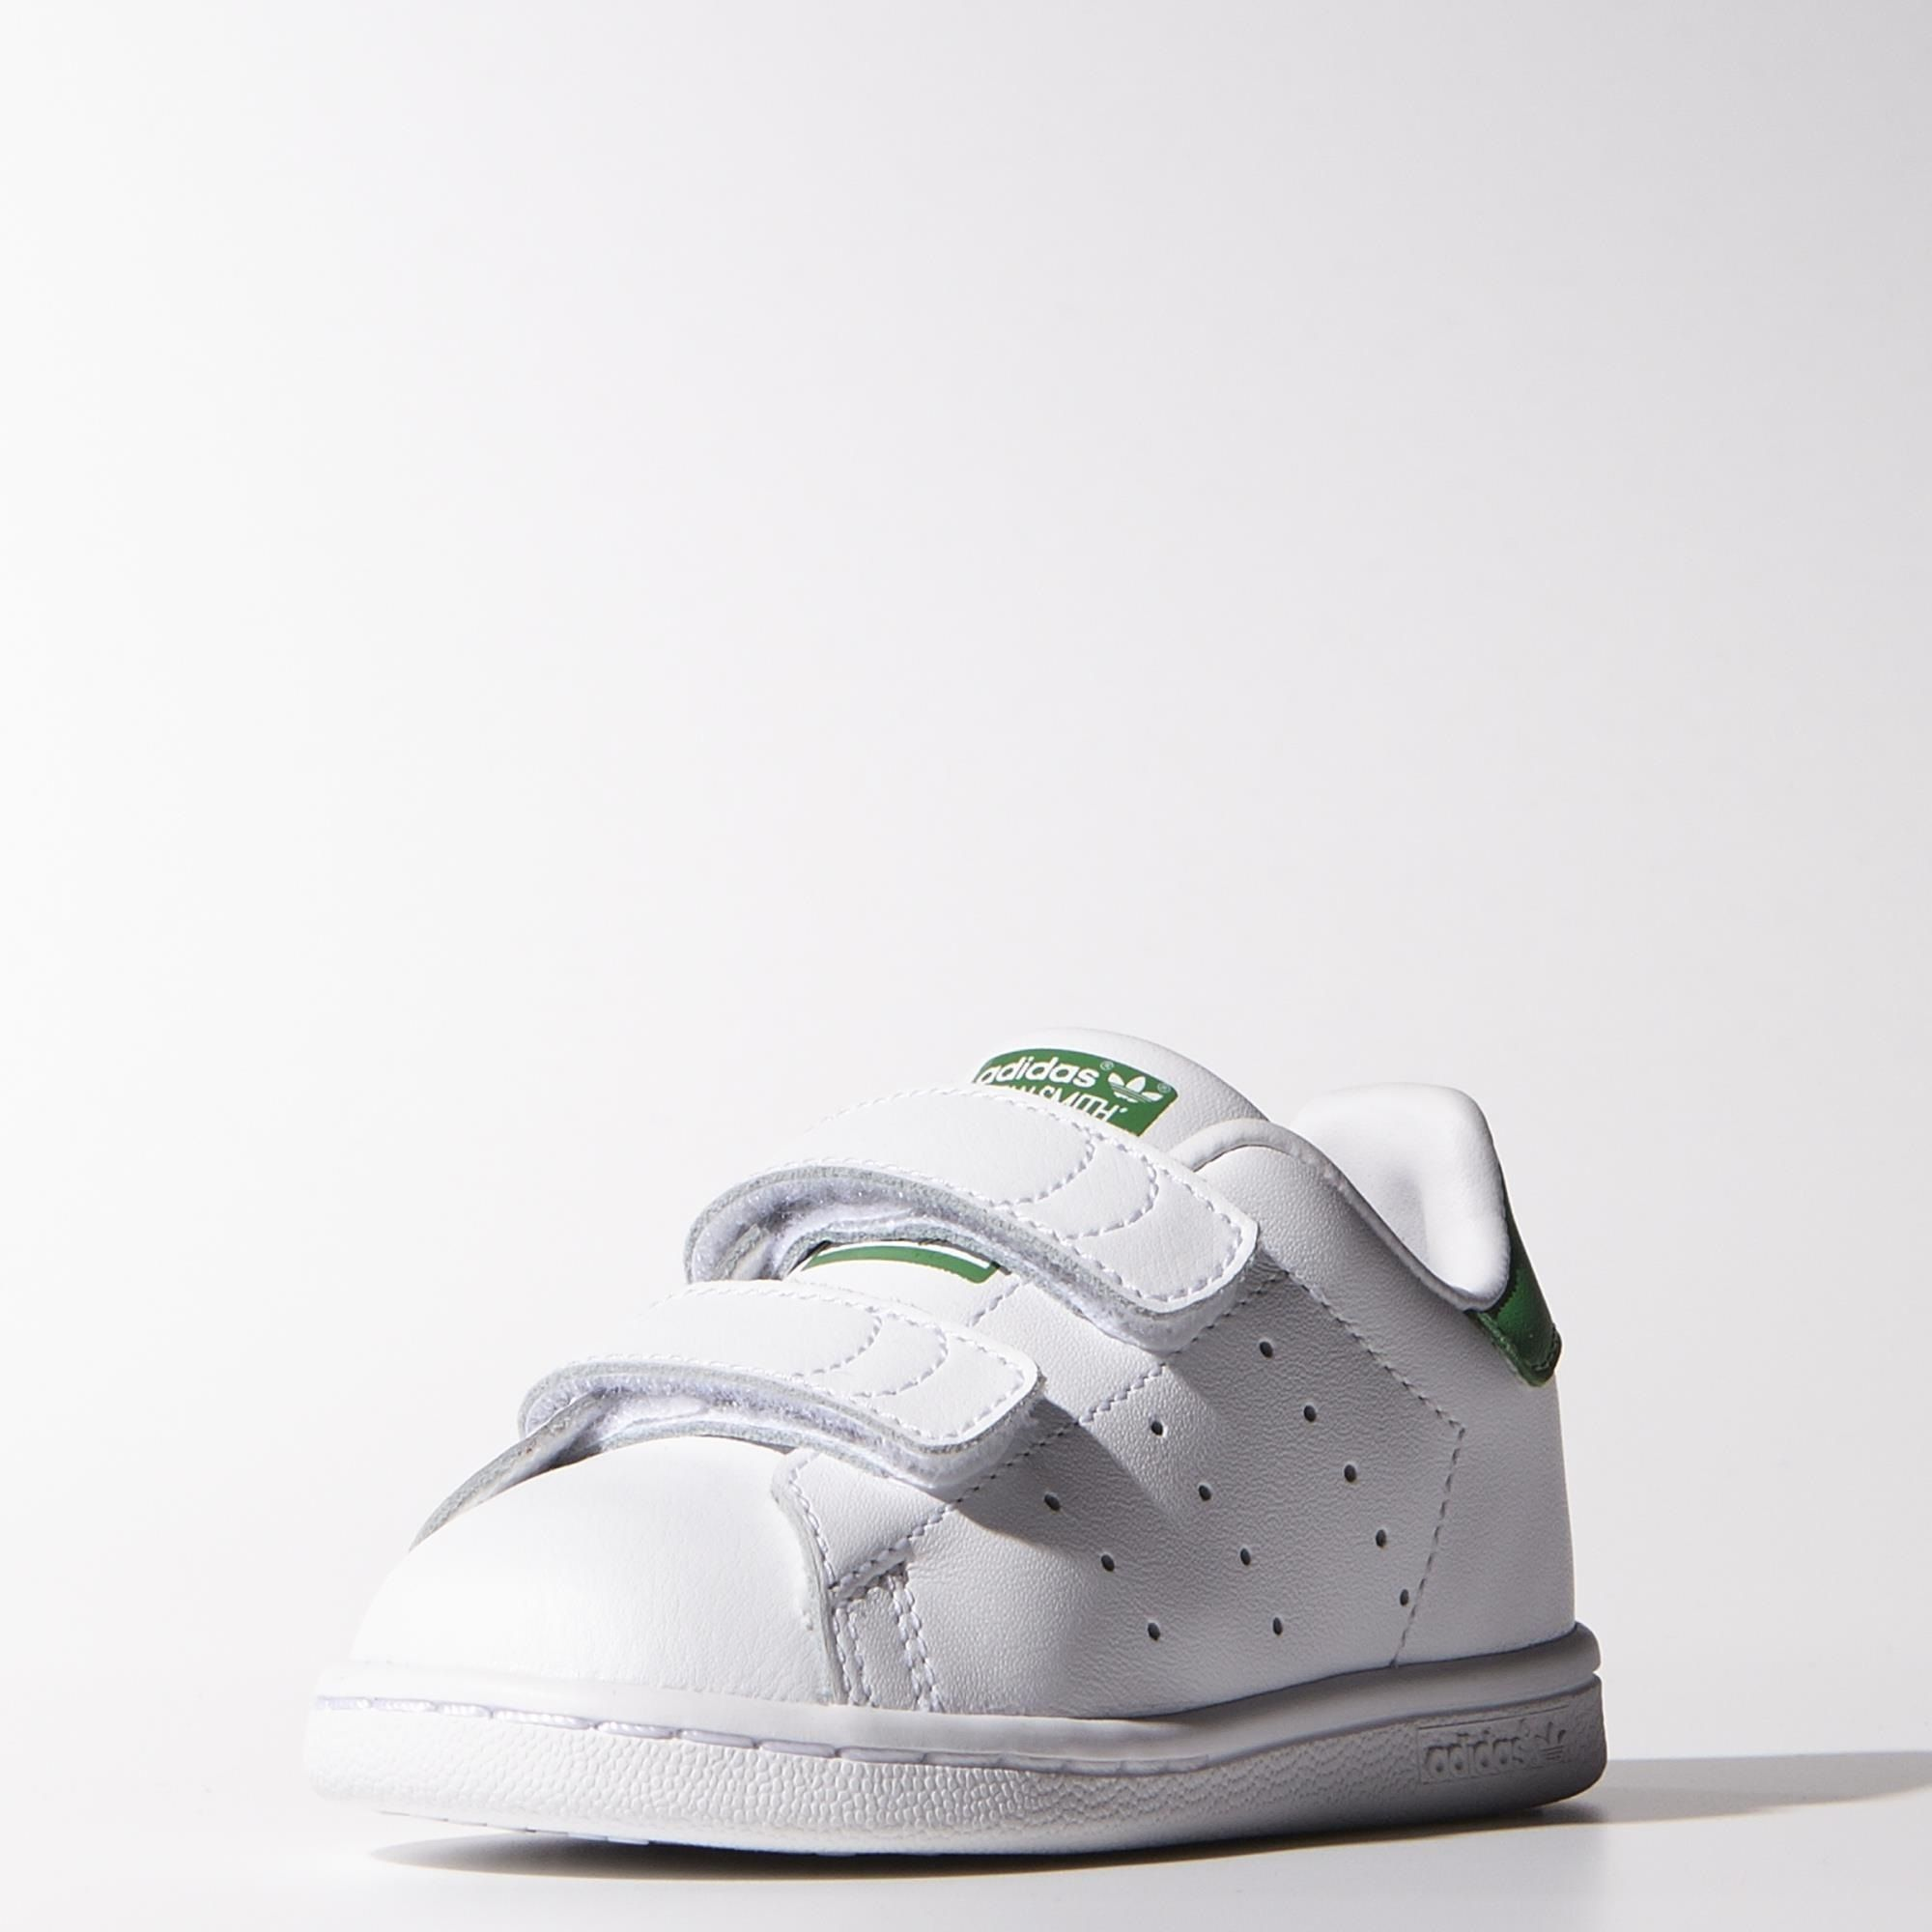 detailed look 12329 141cd Chaussures Stan Smith adidas   adidas France